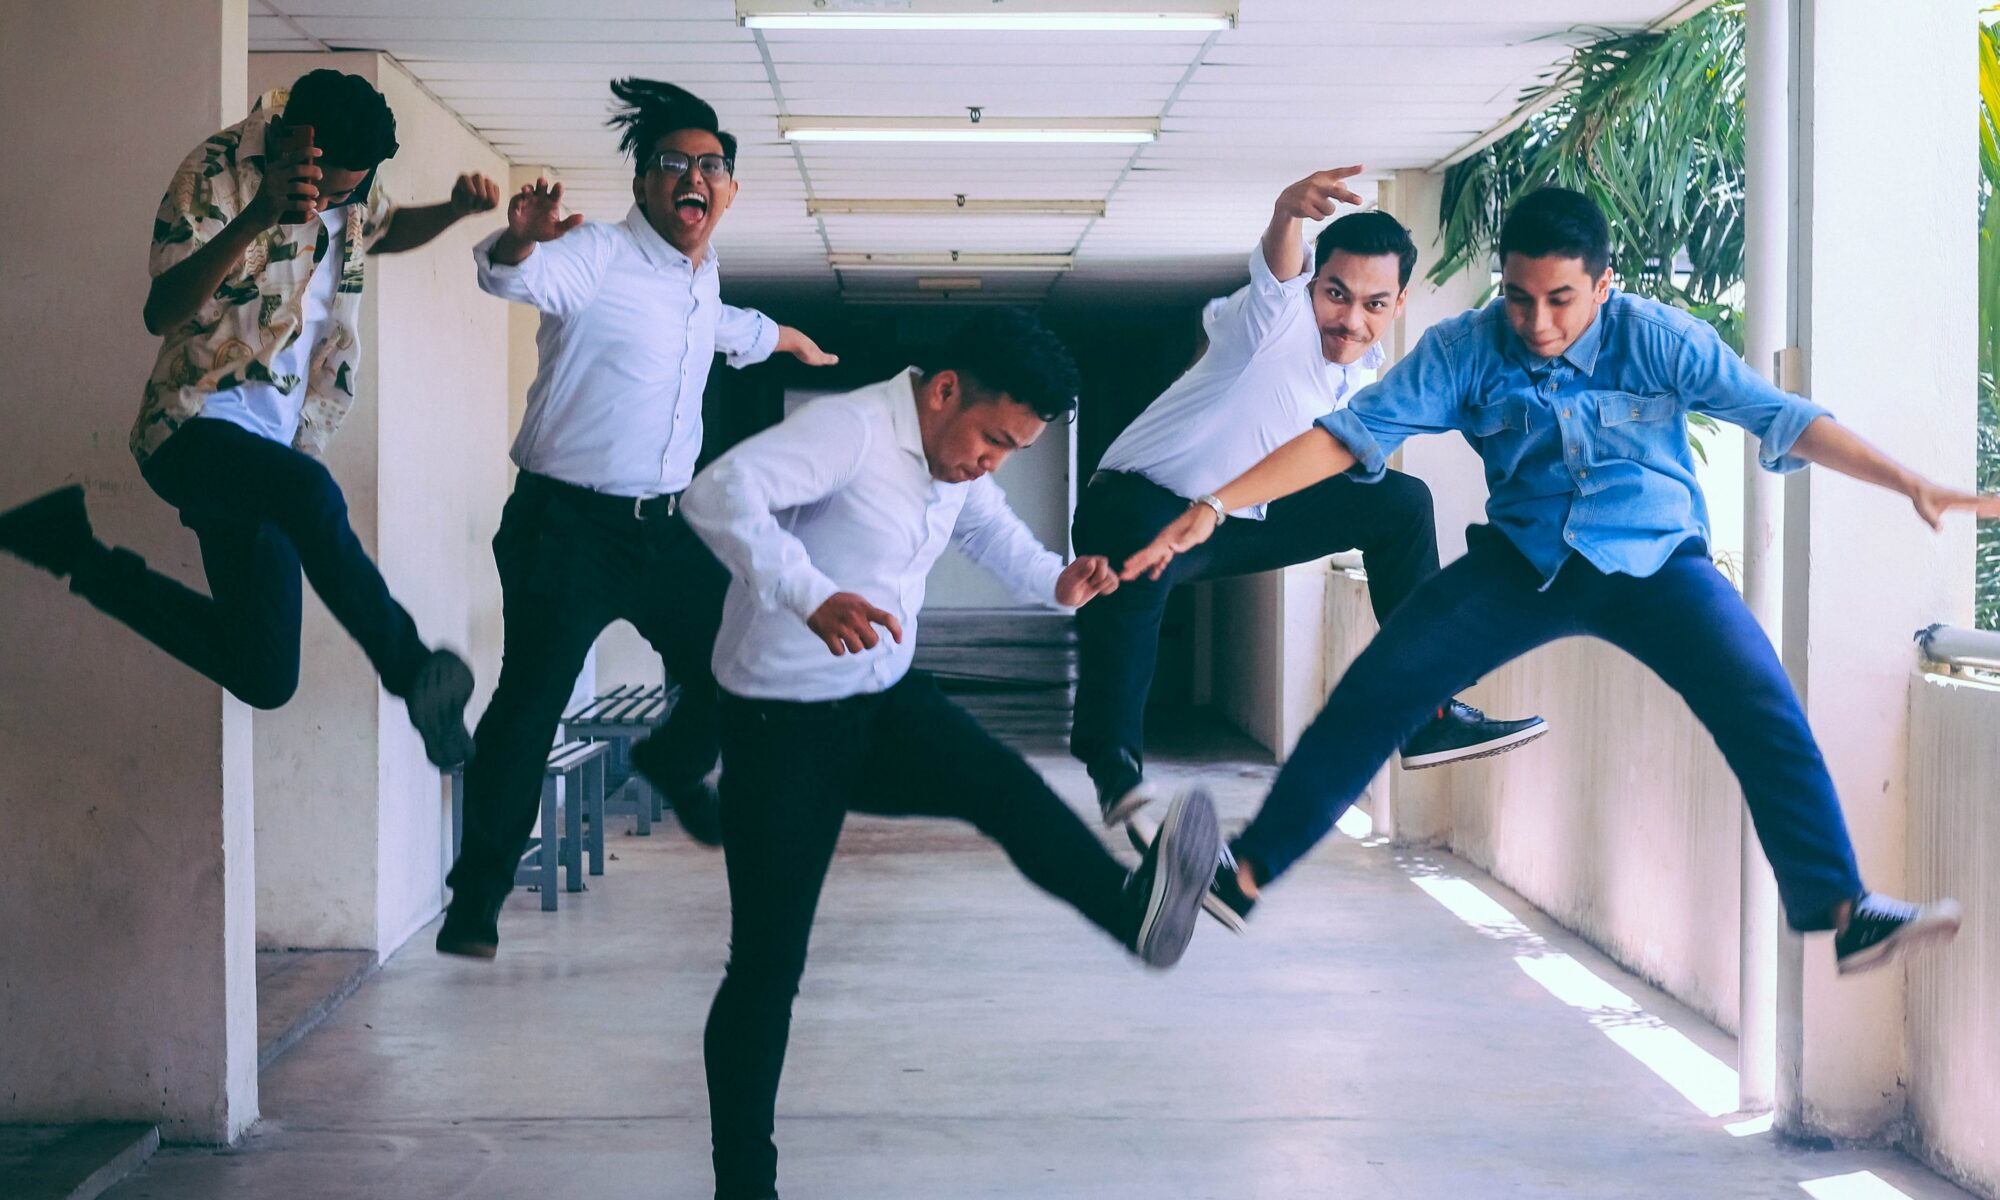 People jumping in an office cooridor.